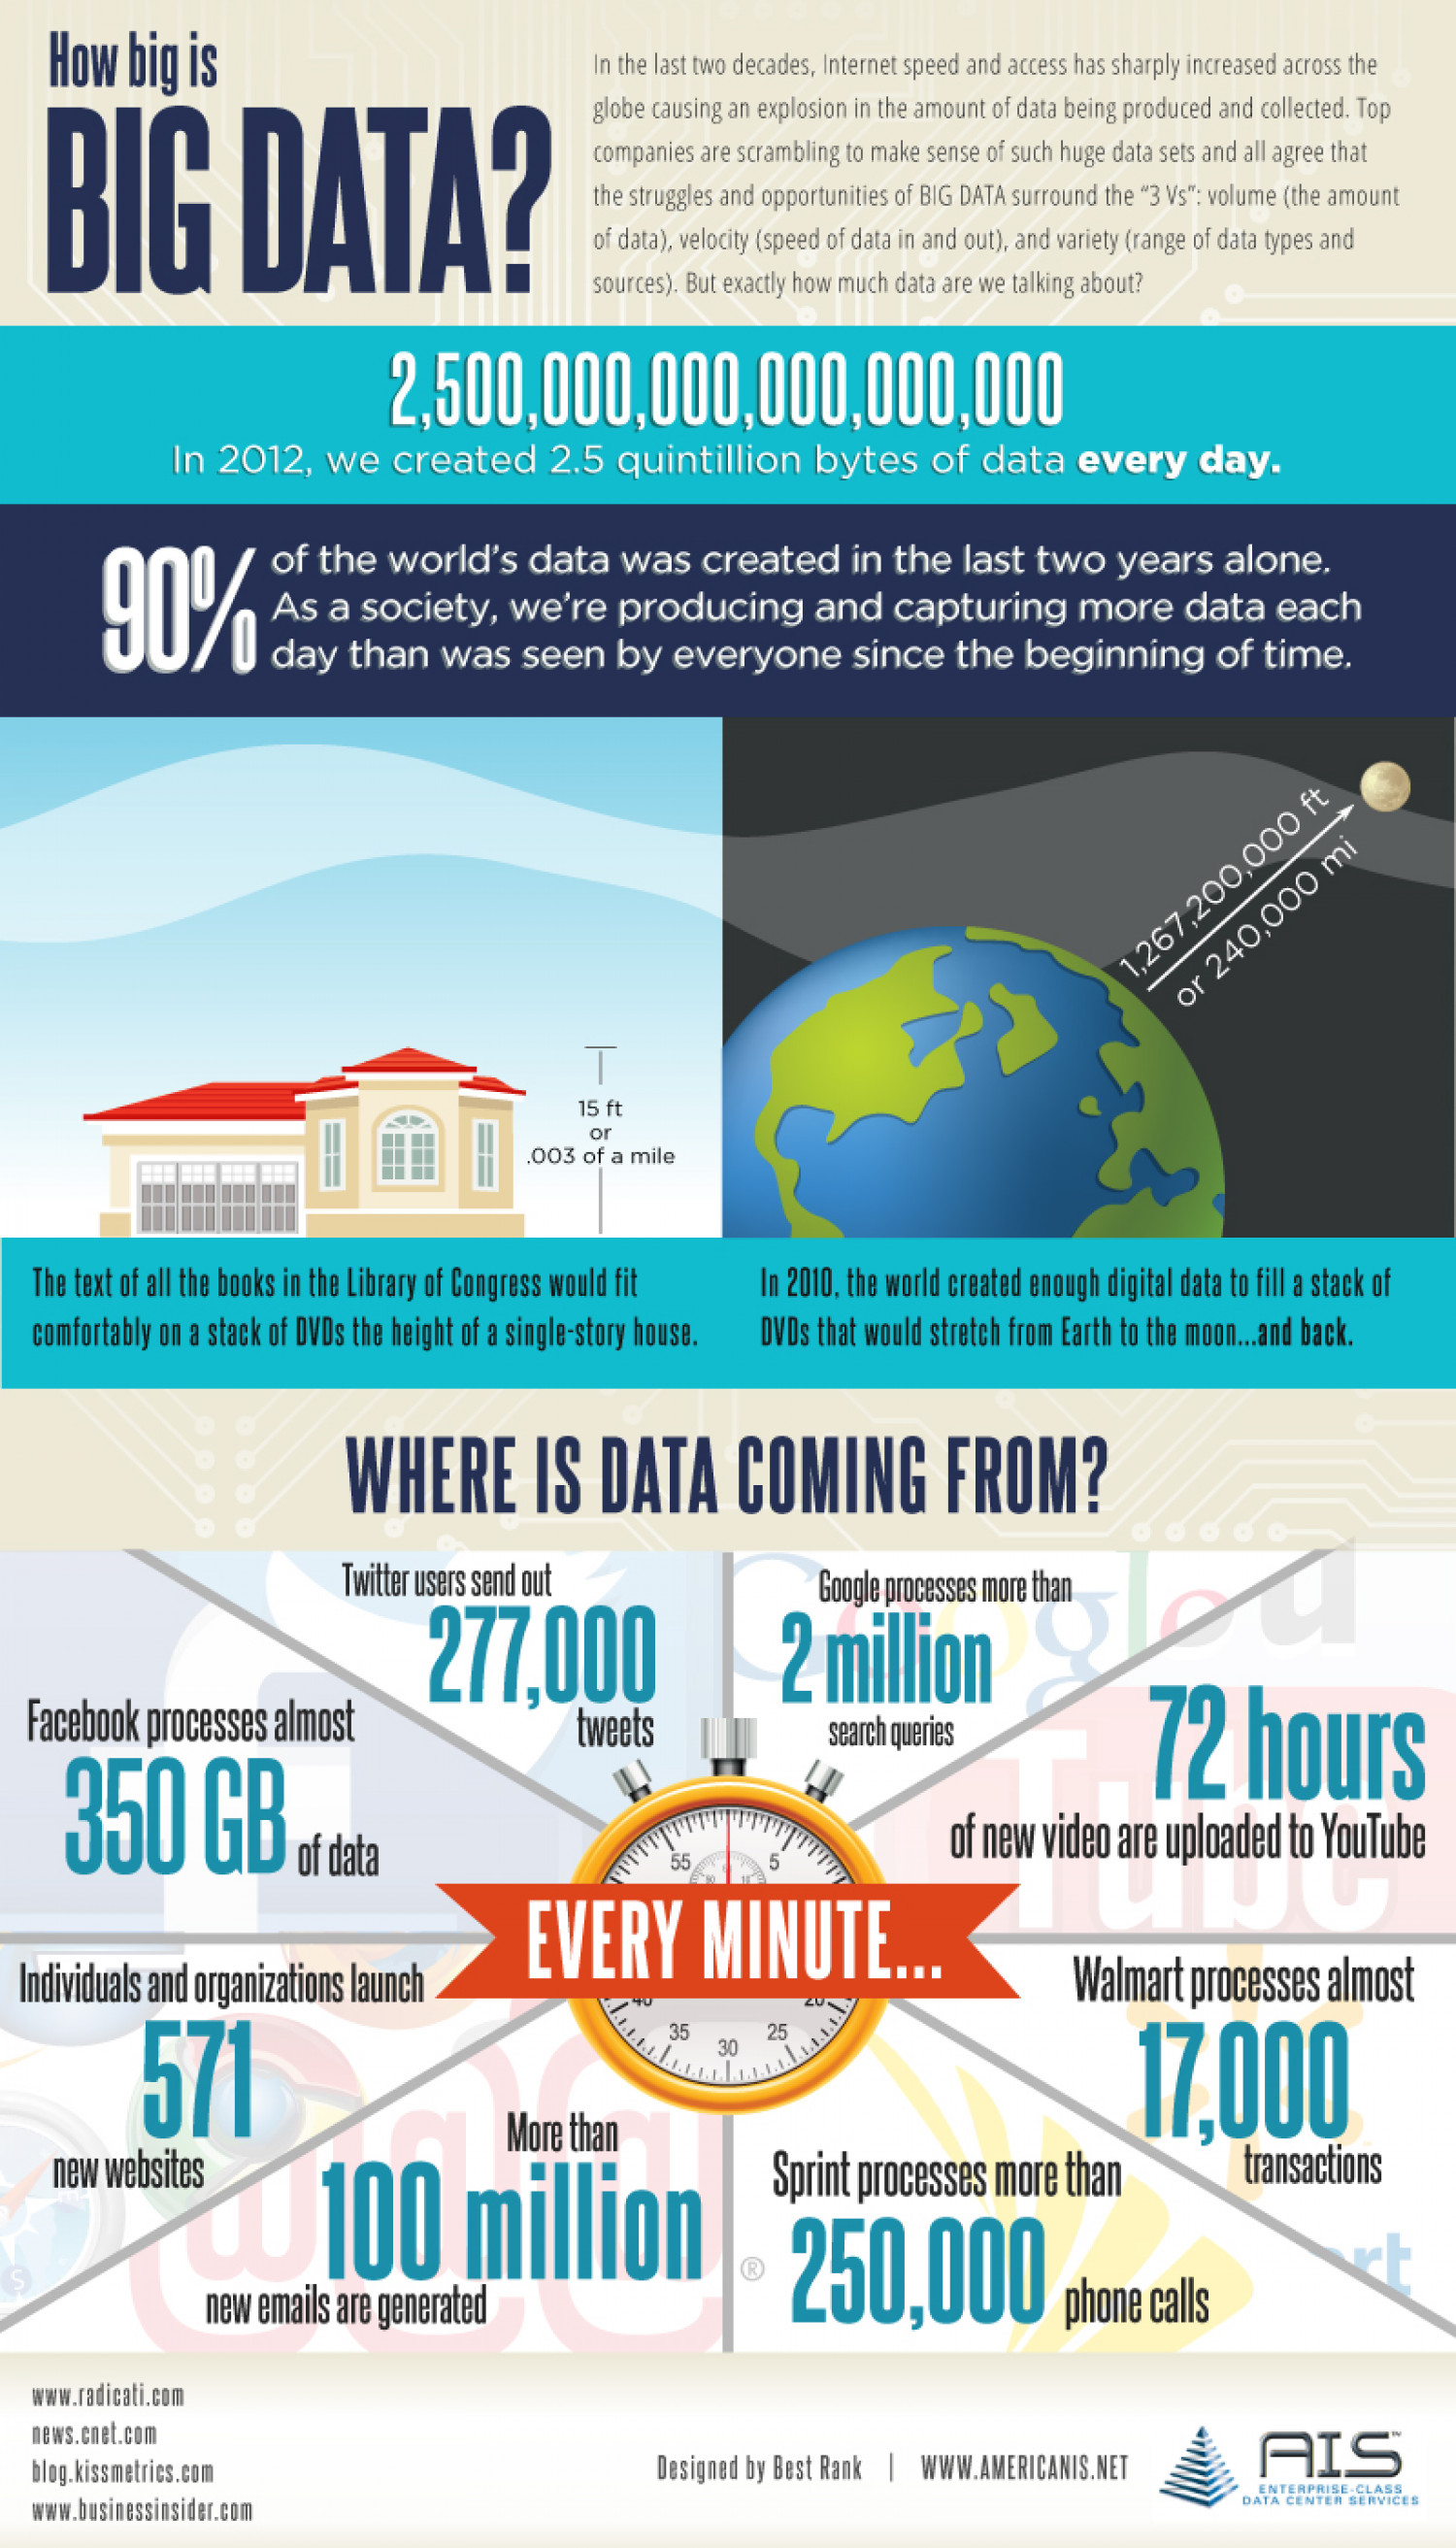 How BIG is Big Data? Infographic